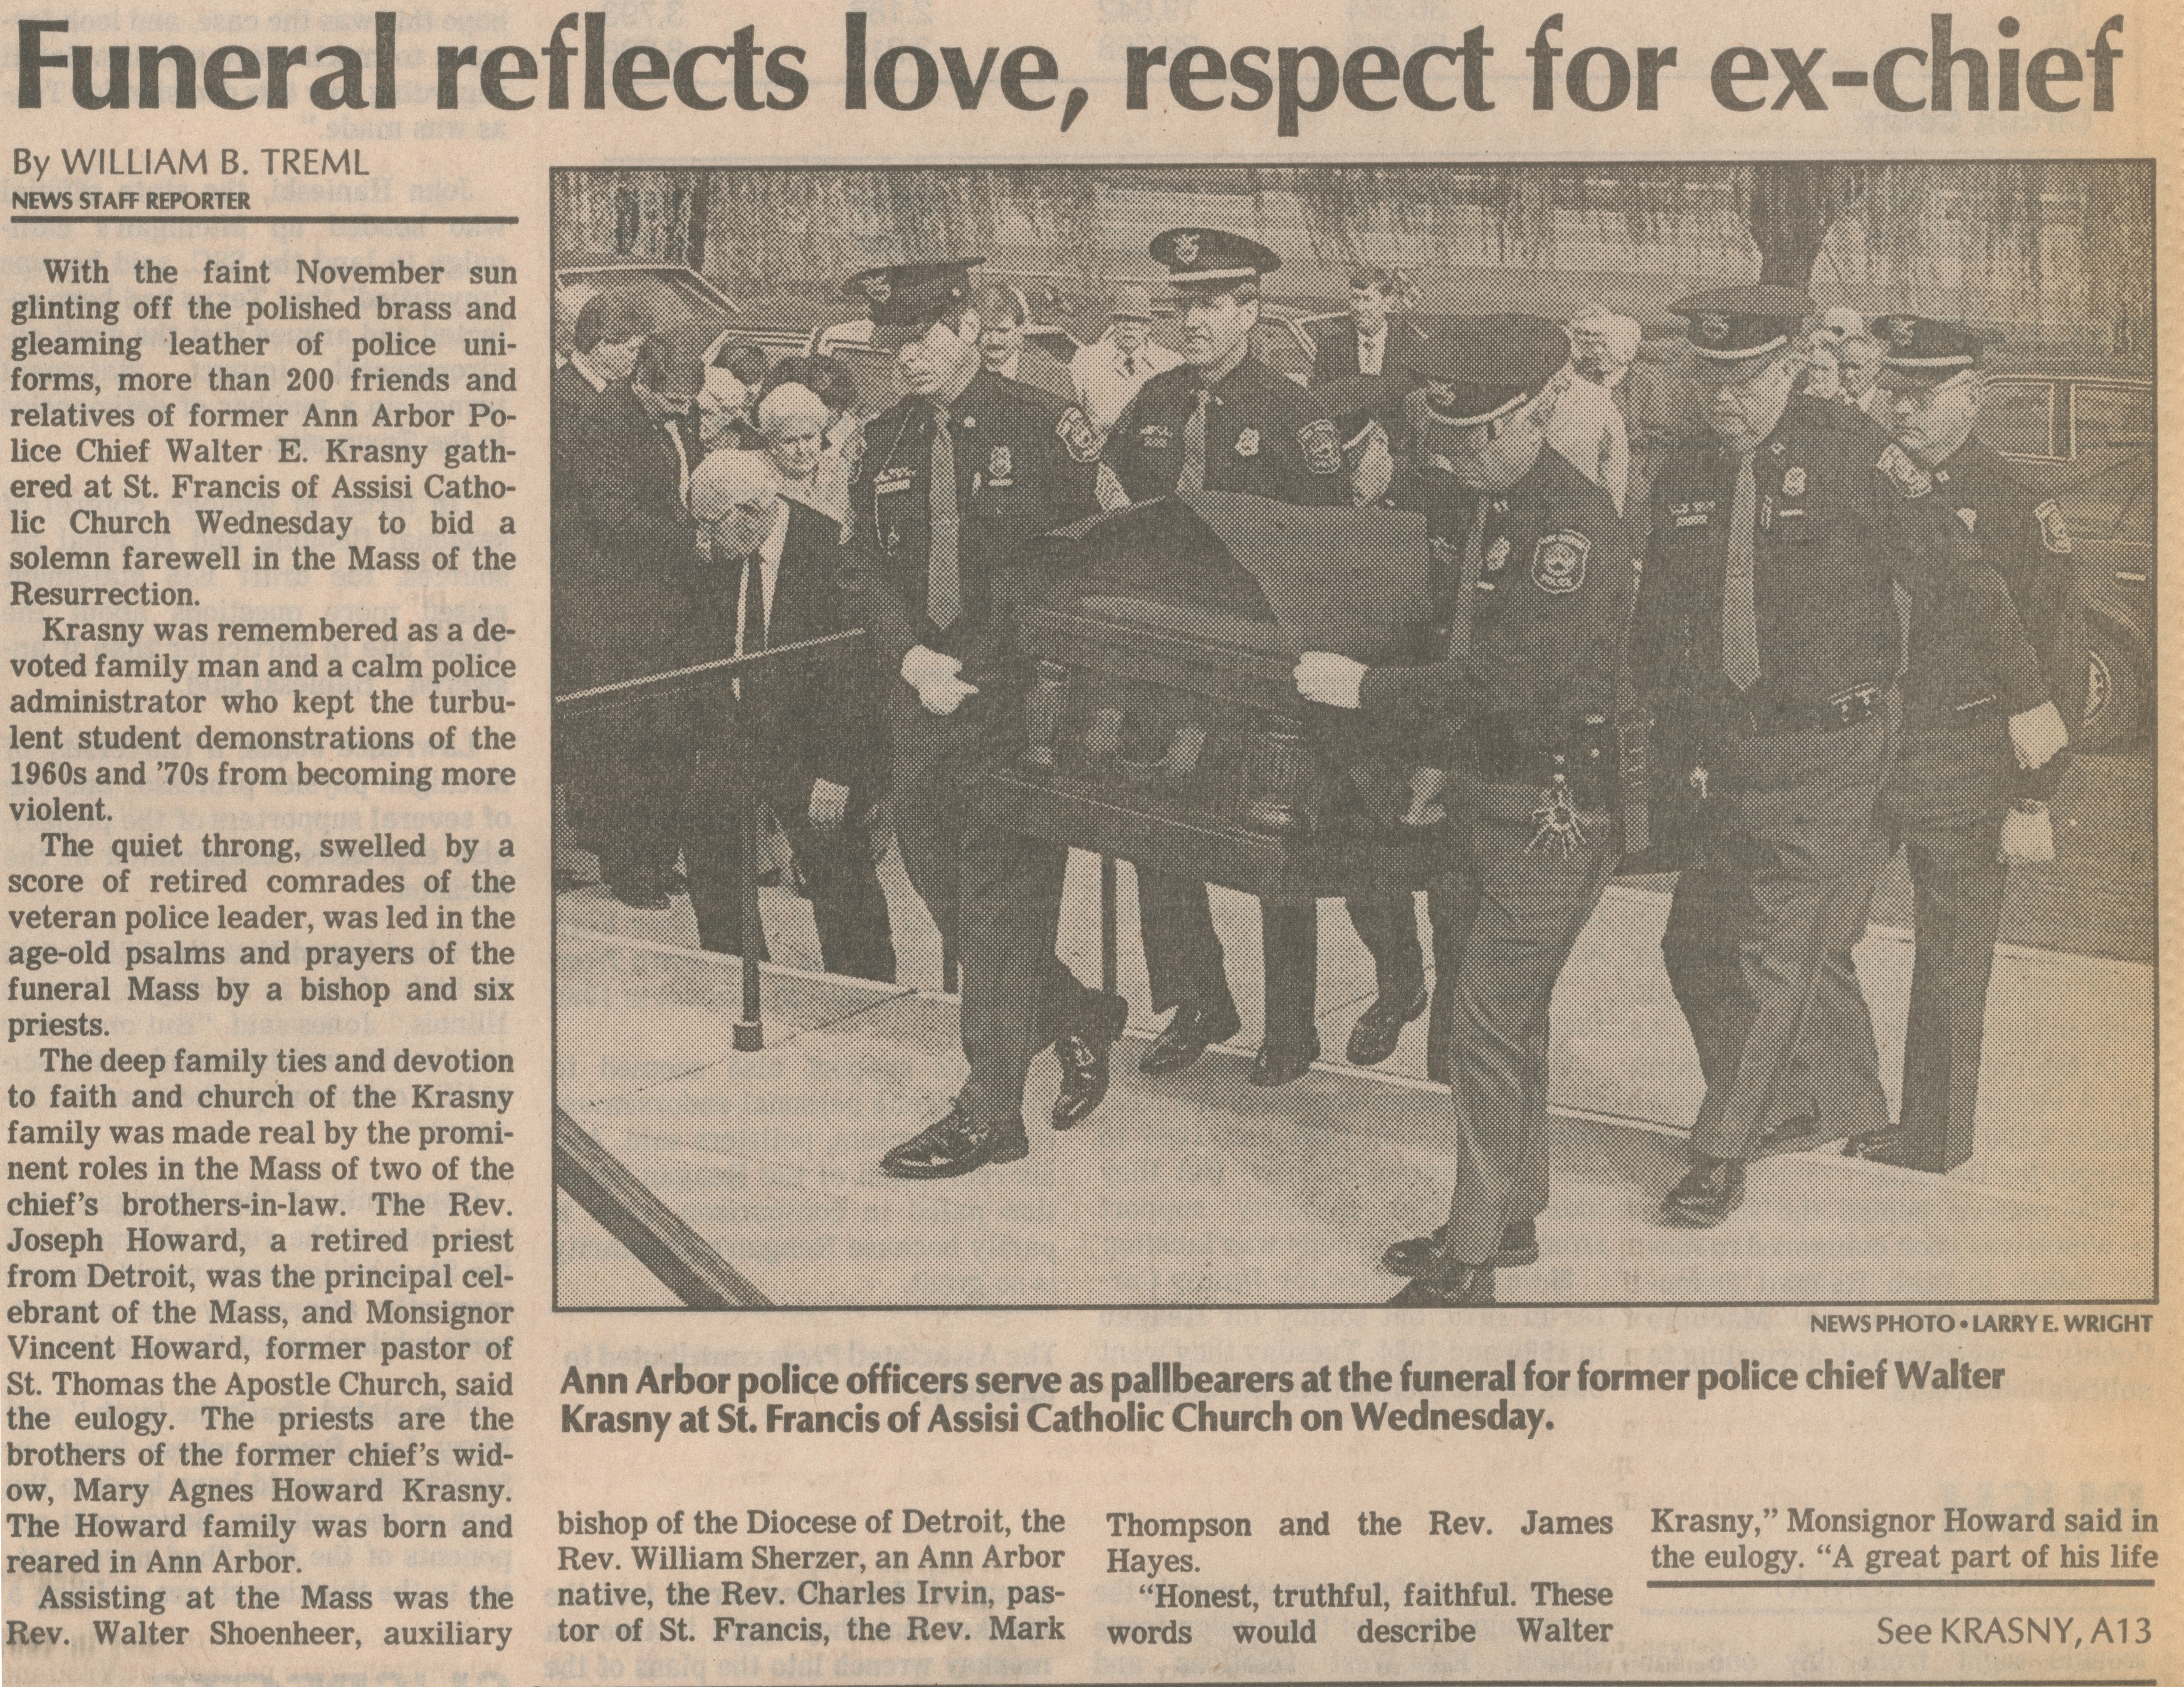 Funeral Reflects Love, Respect For Ex-Chief image